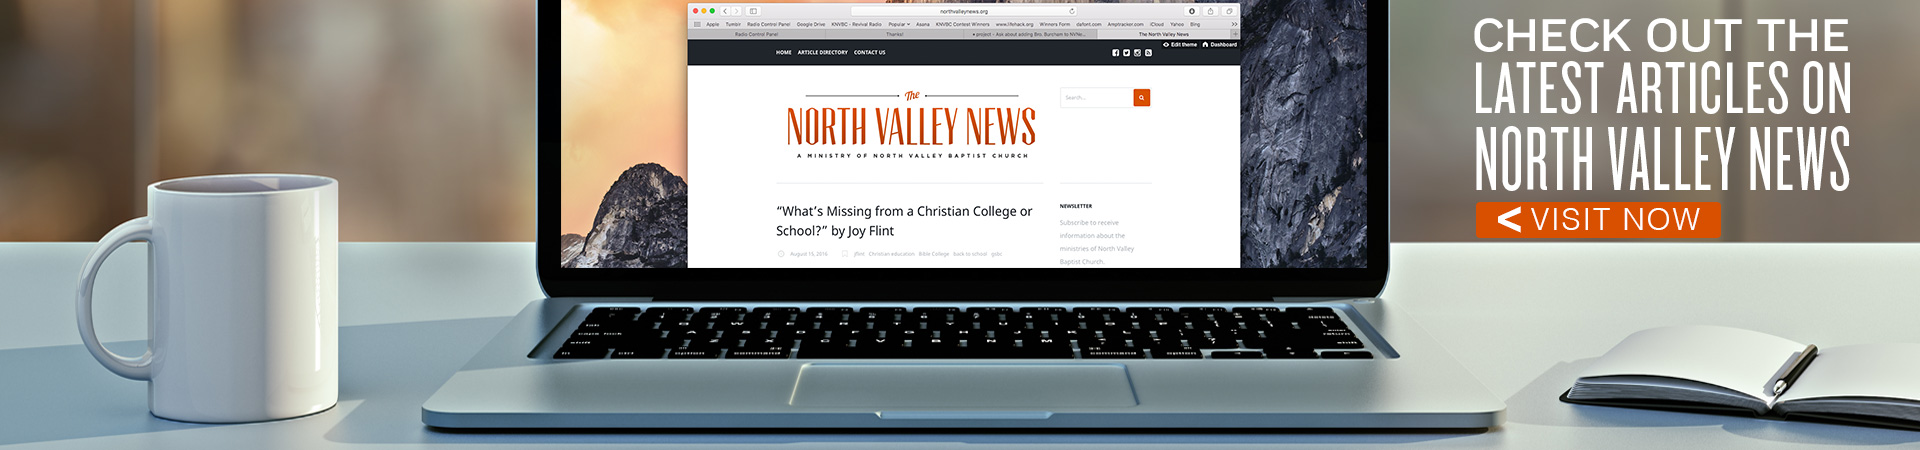 The North Valley News